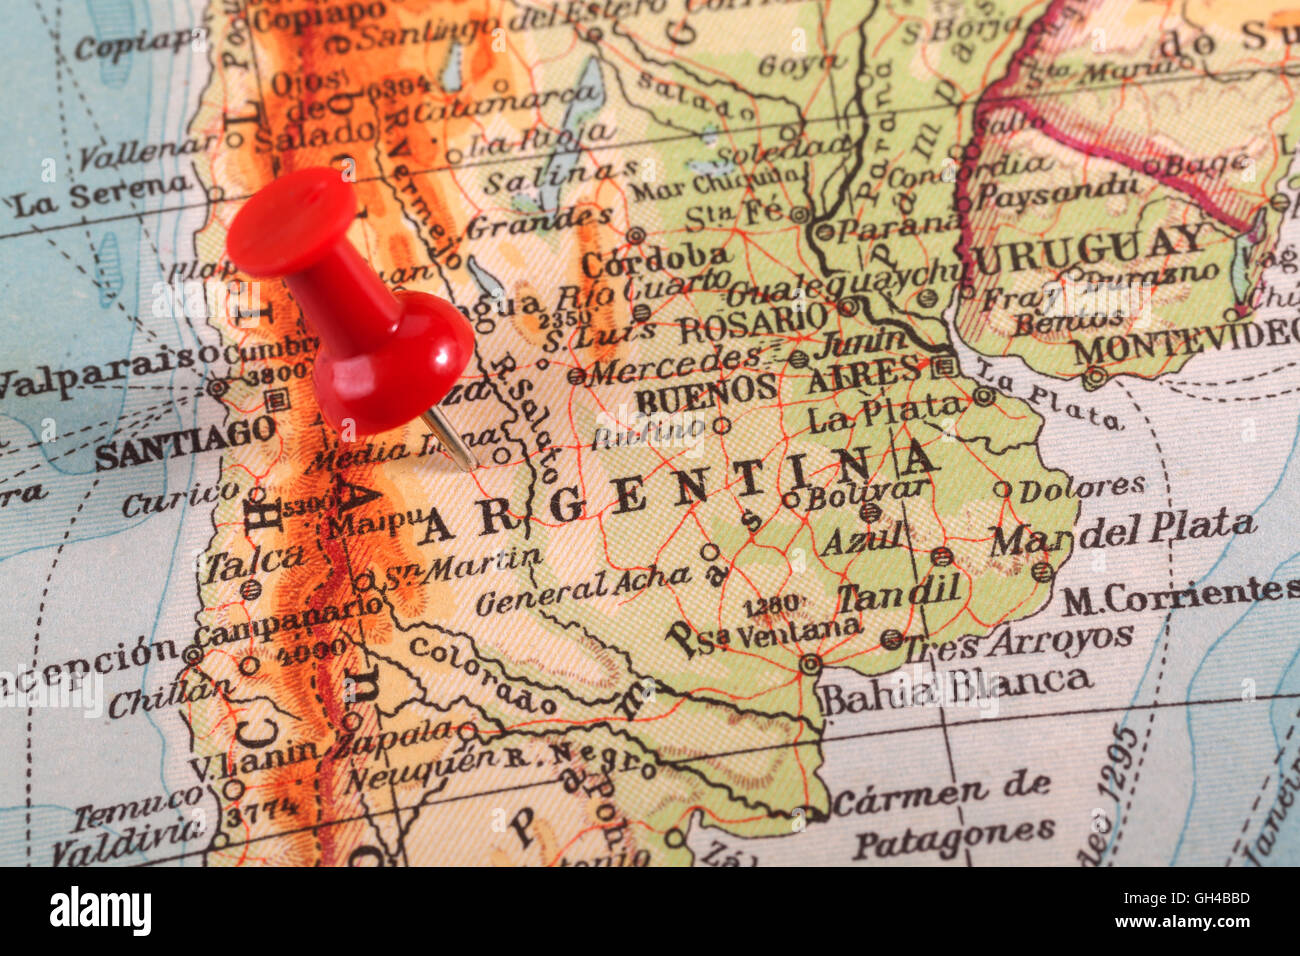 Map pin maps pins stock photos map pin maps pins stock images alamy push pins showing the location of a destination point on a map argentina stock gumiabroncs Image collections